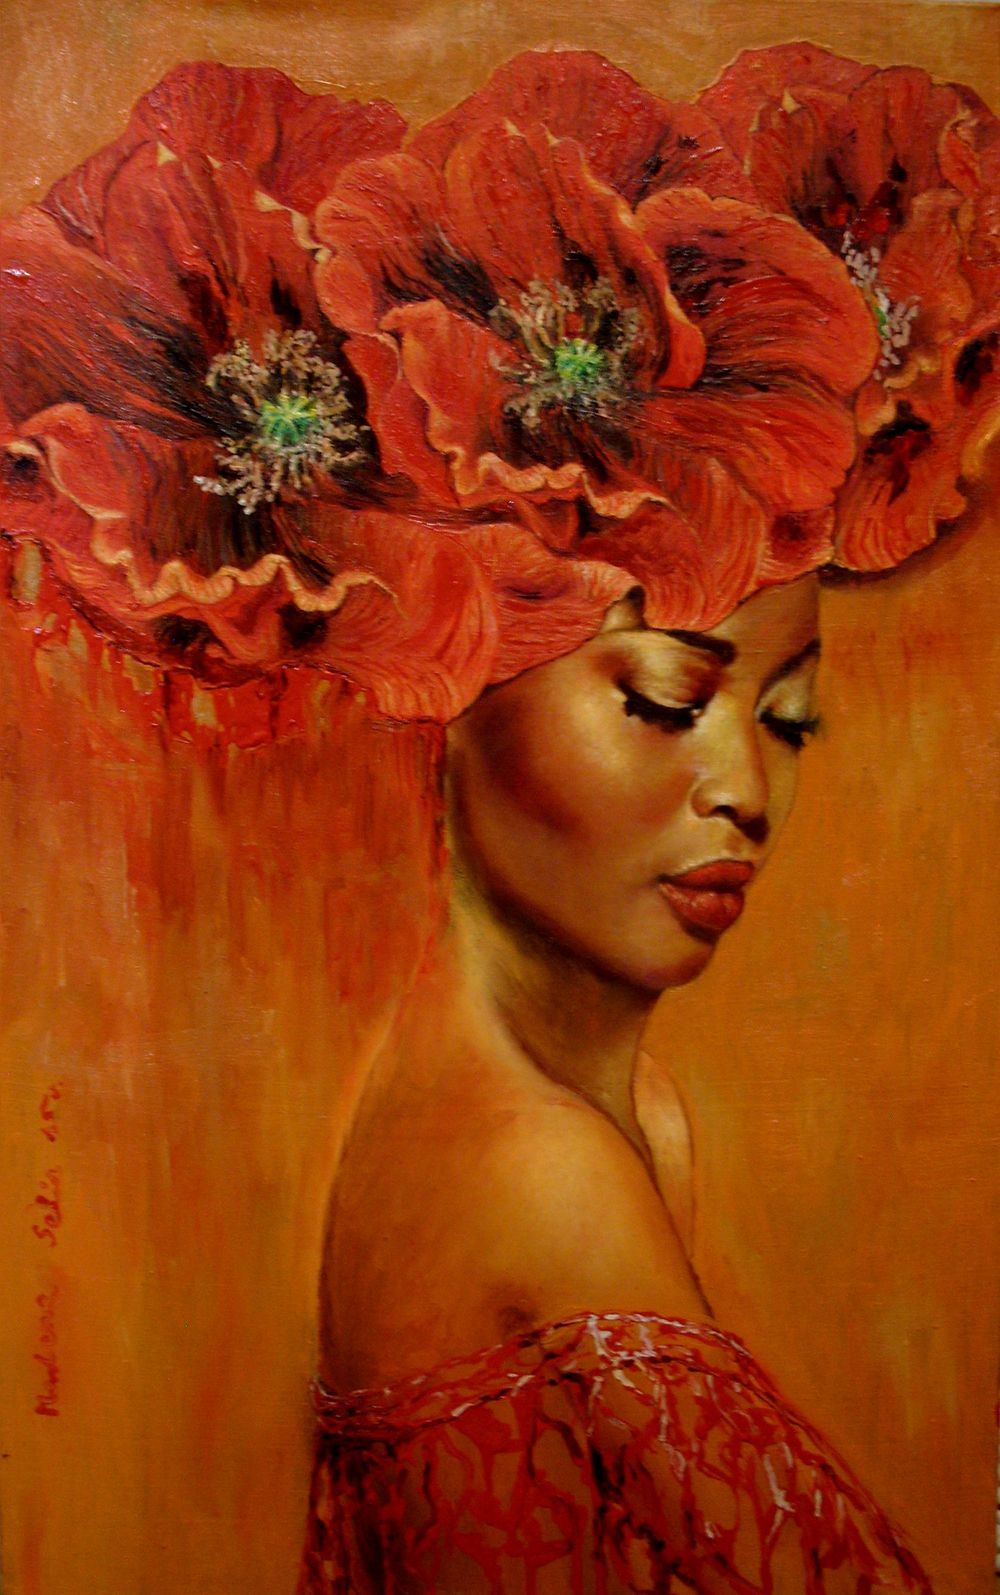 Formation Of Dreams Maratamara- Black Women Art Paintings And Street